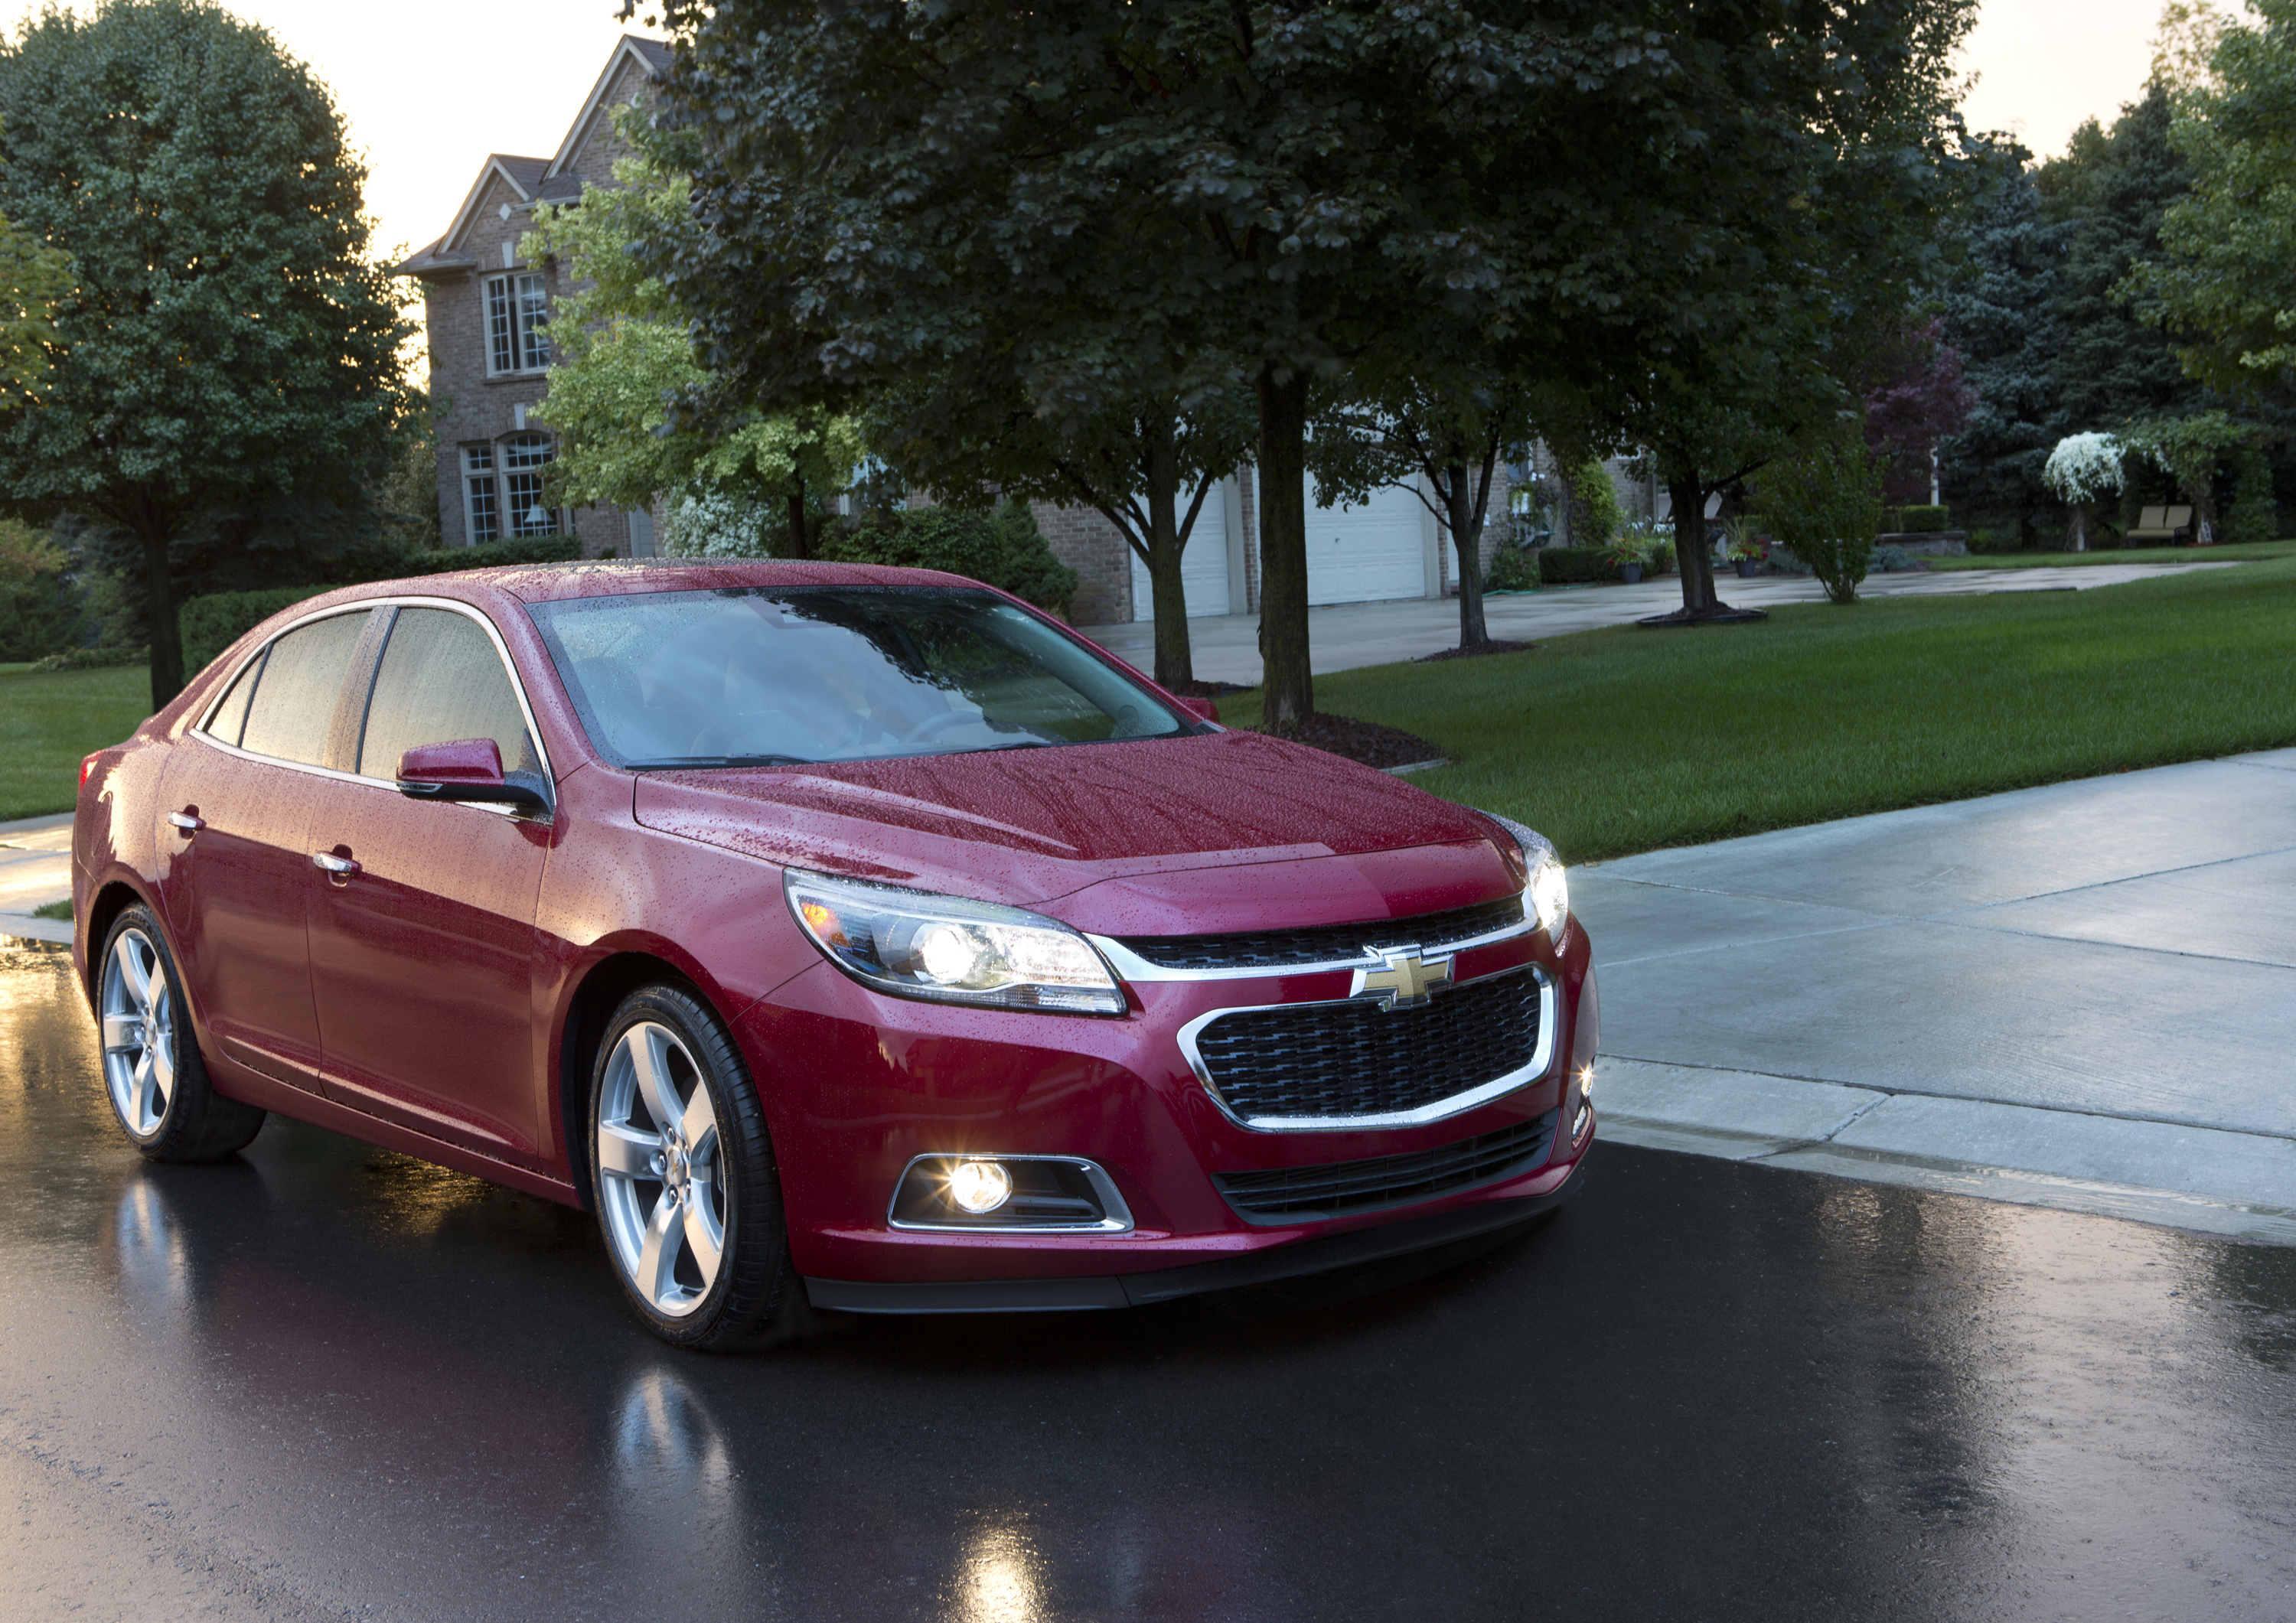 2014 Chevrolet Malibu 010 gm announces five safety recalls  at sewacar.co